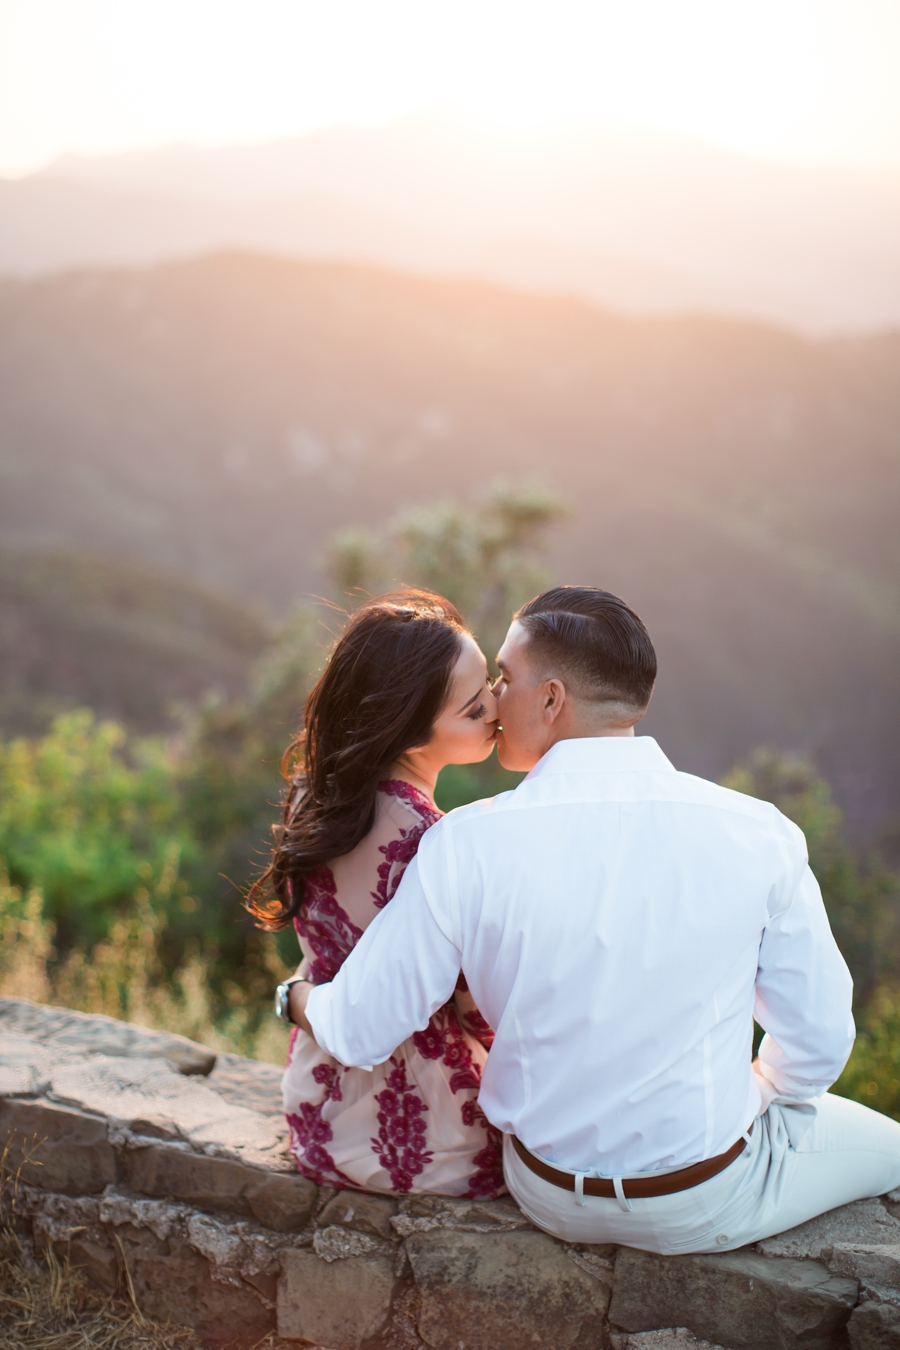 Taylor_Kinzie_Photography_Santa_Barbara_Engagement_Photography_0119